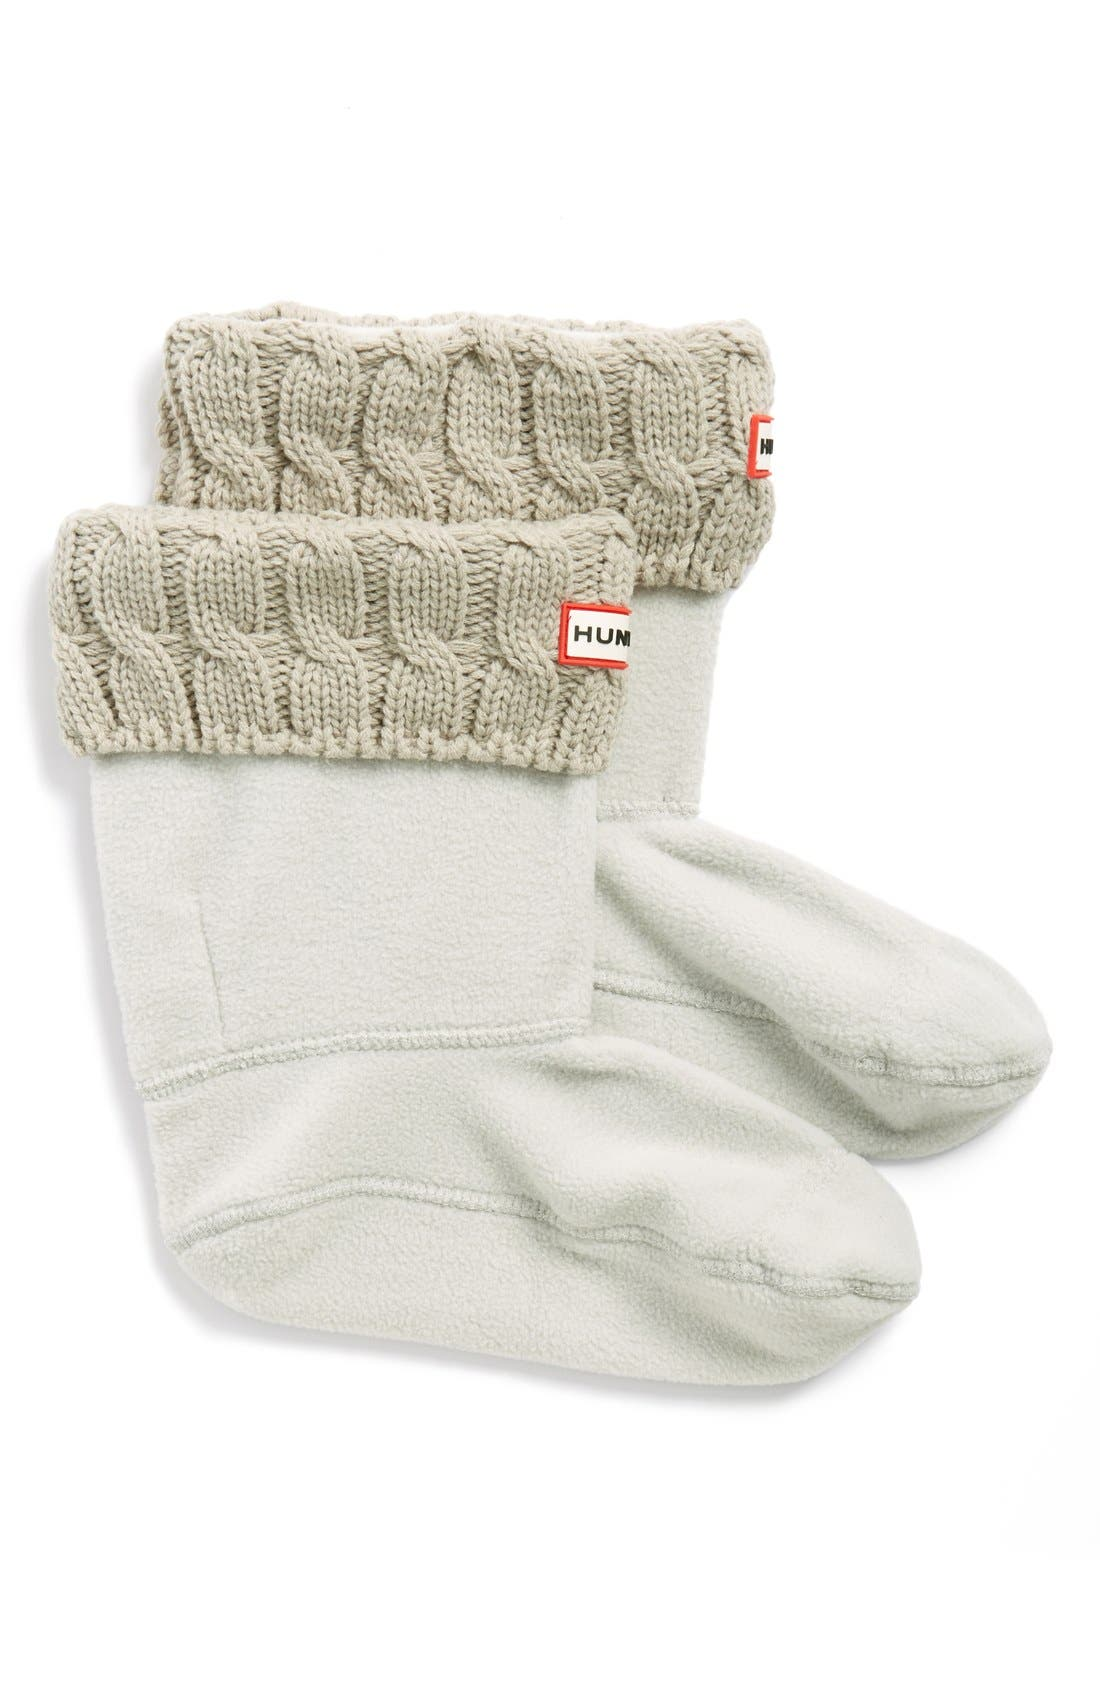 HUNTER Original Short Cable Knit Cuff Welly Boot